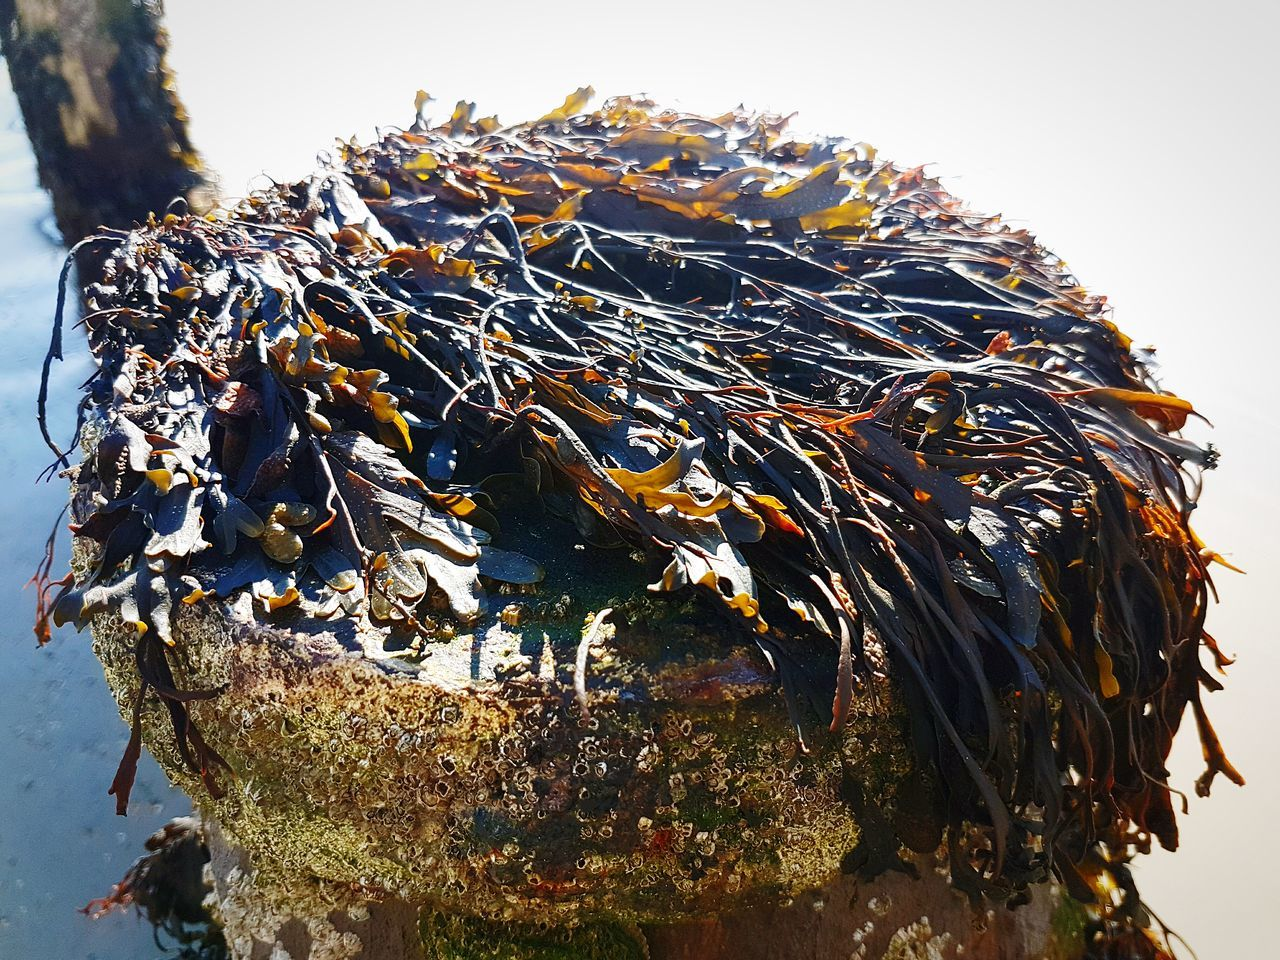 Close-up Nature Outdoors Day Beauty In Nature Freshness Beach Seaweed Kelp